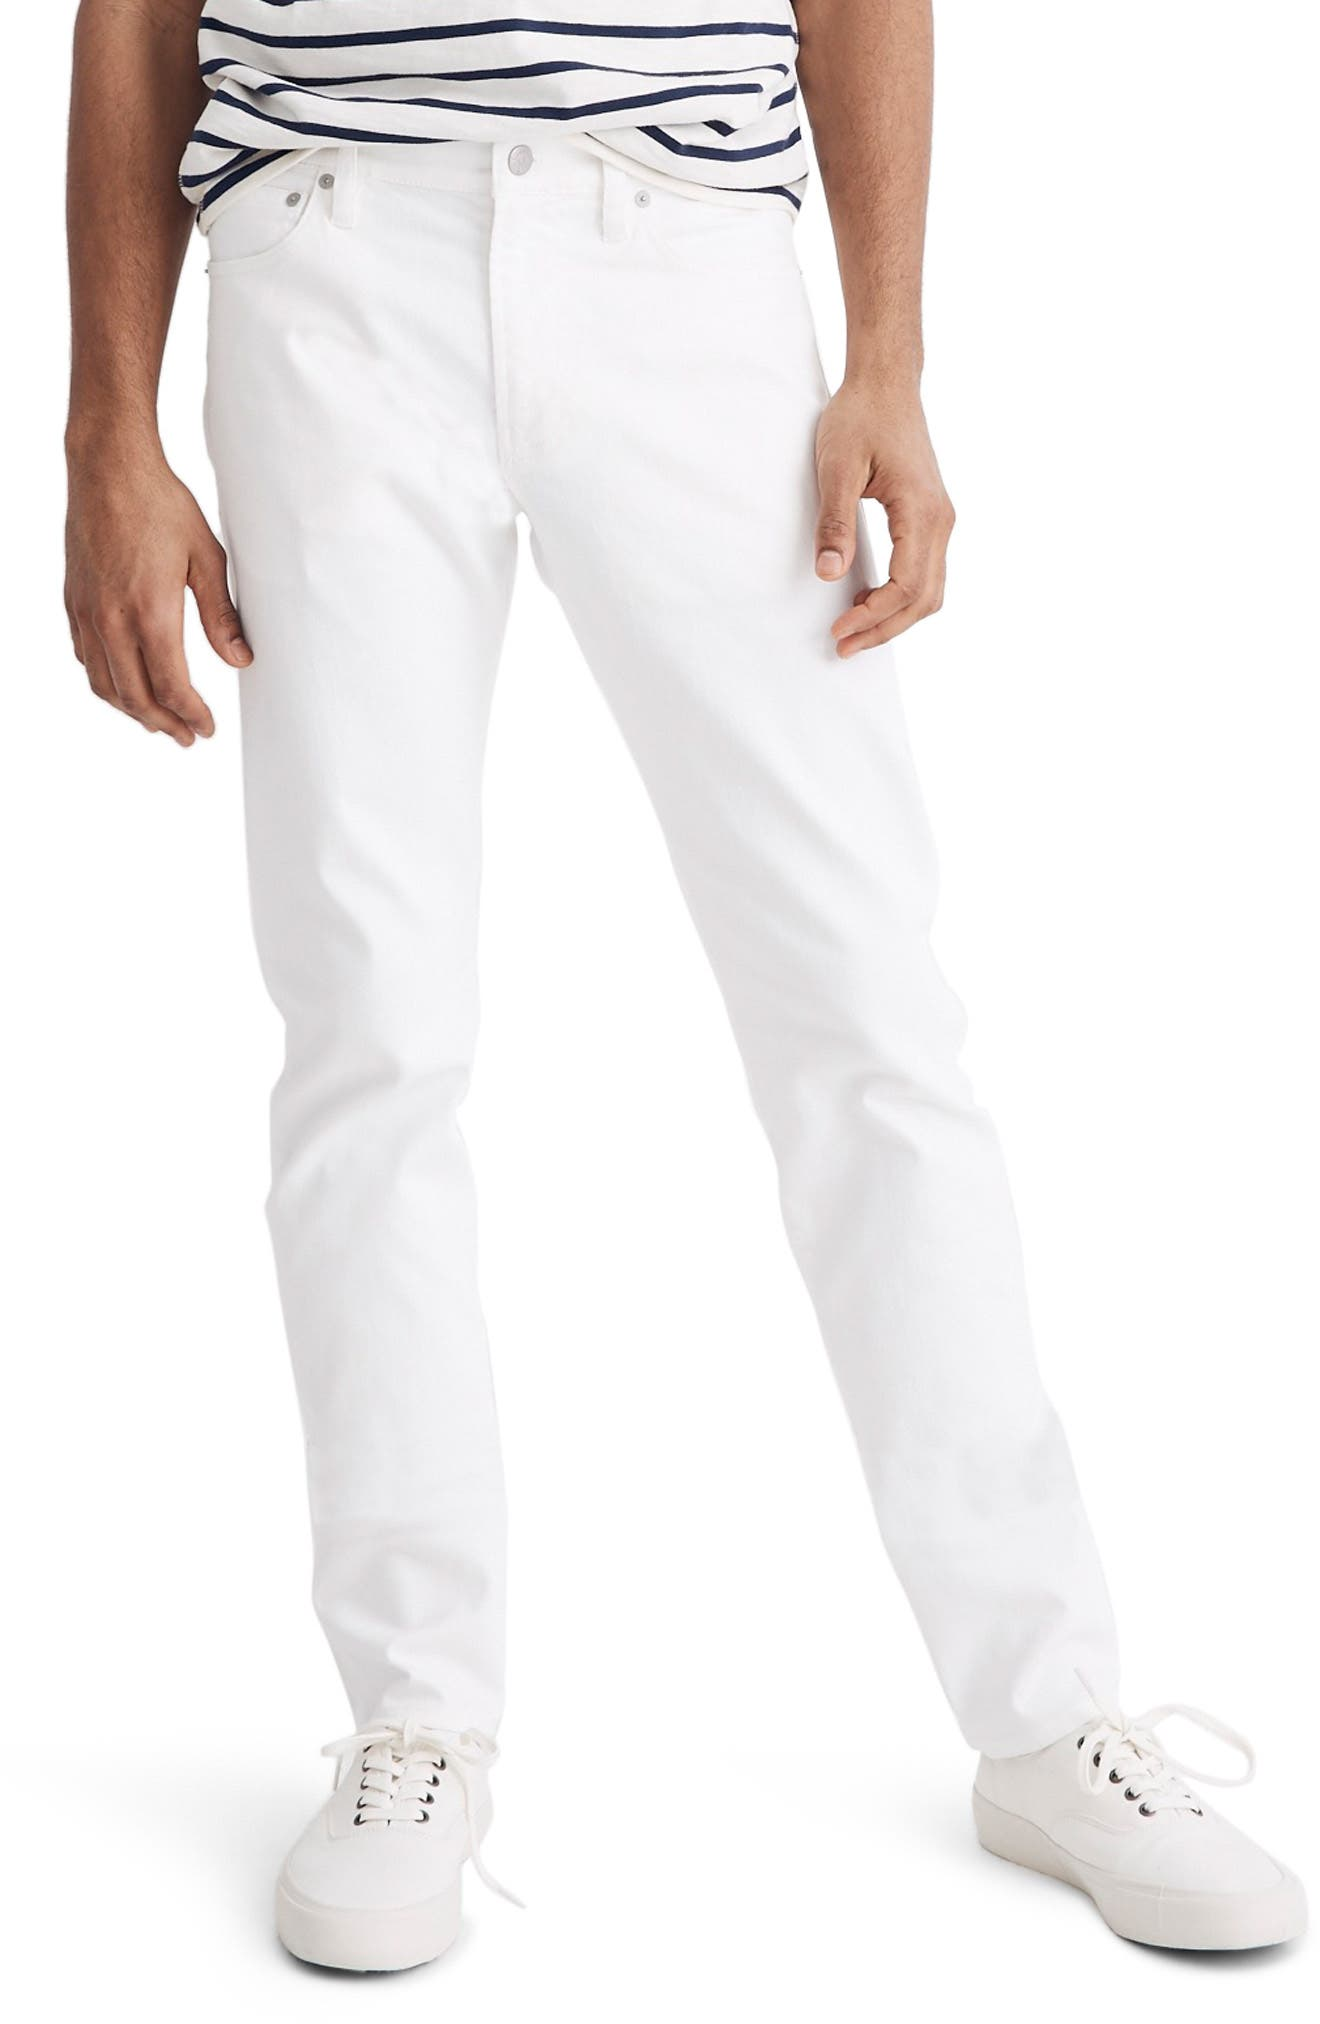 MADEWELL, Slim Fit Jeans, Main thumbnail 1, color, TILE WHITE